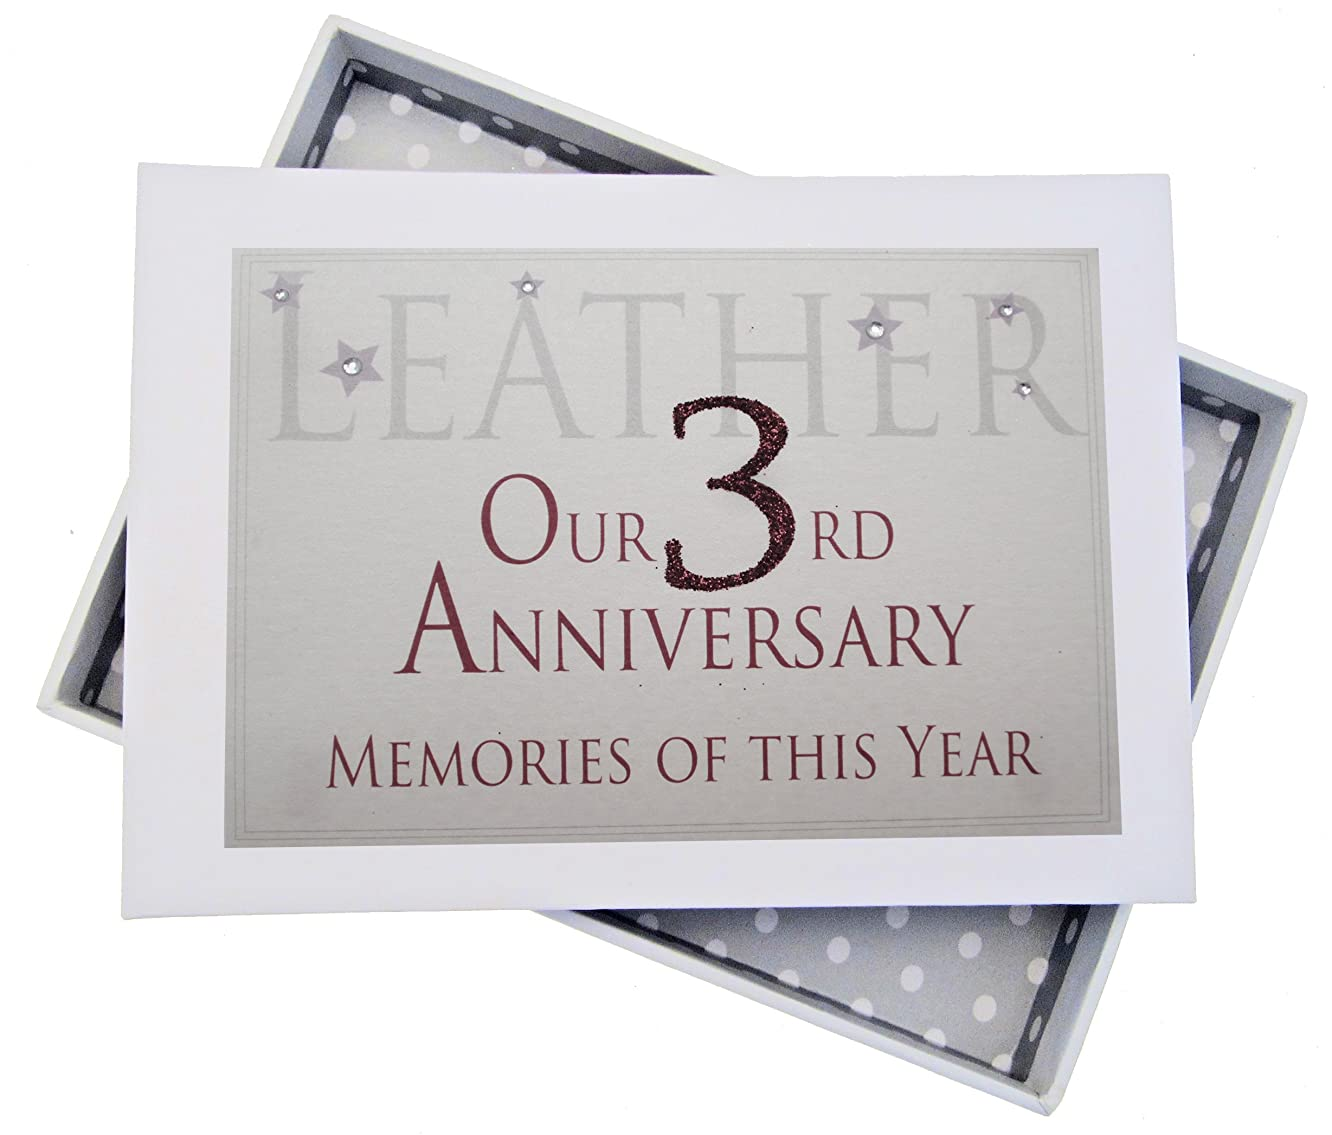 white cotton cards AW3T 3rd Leather Anniversary Memories of This Year Tiny Album Glitter and Words by WHITE COTTON CARDS